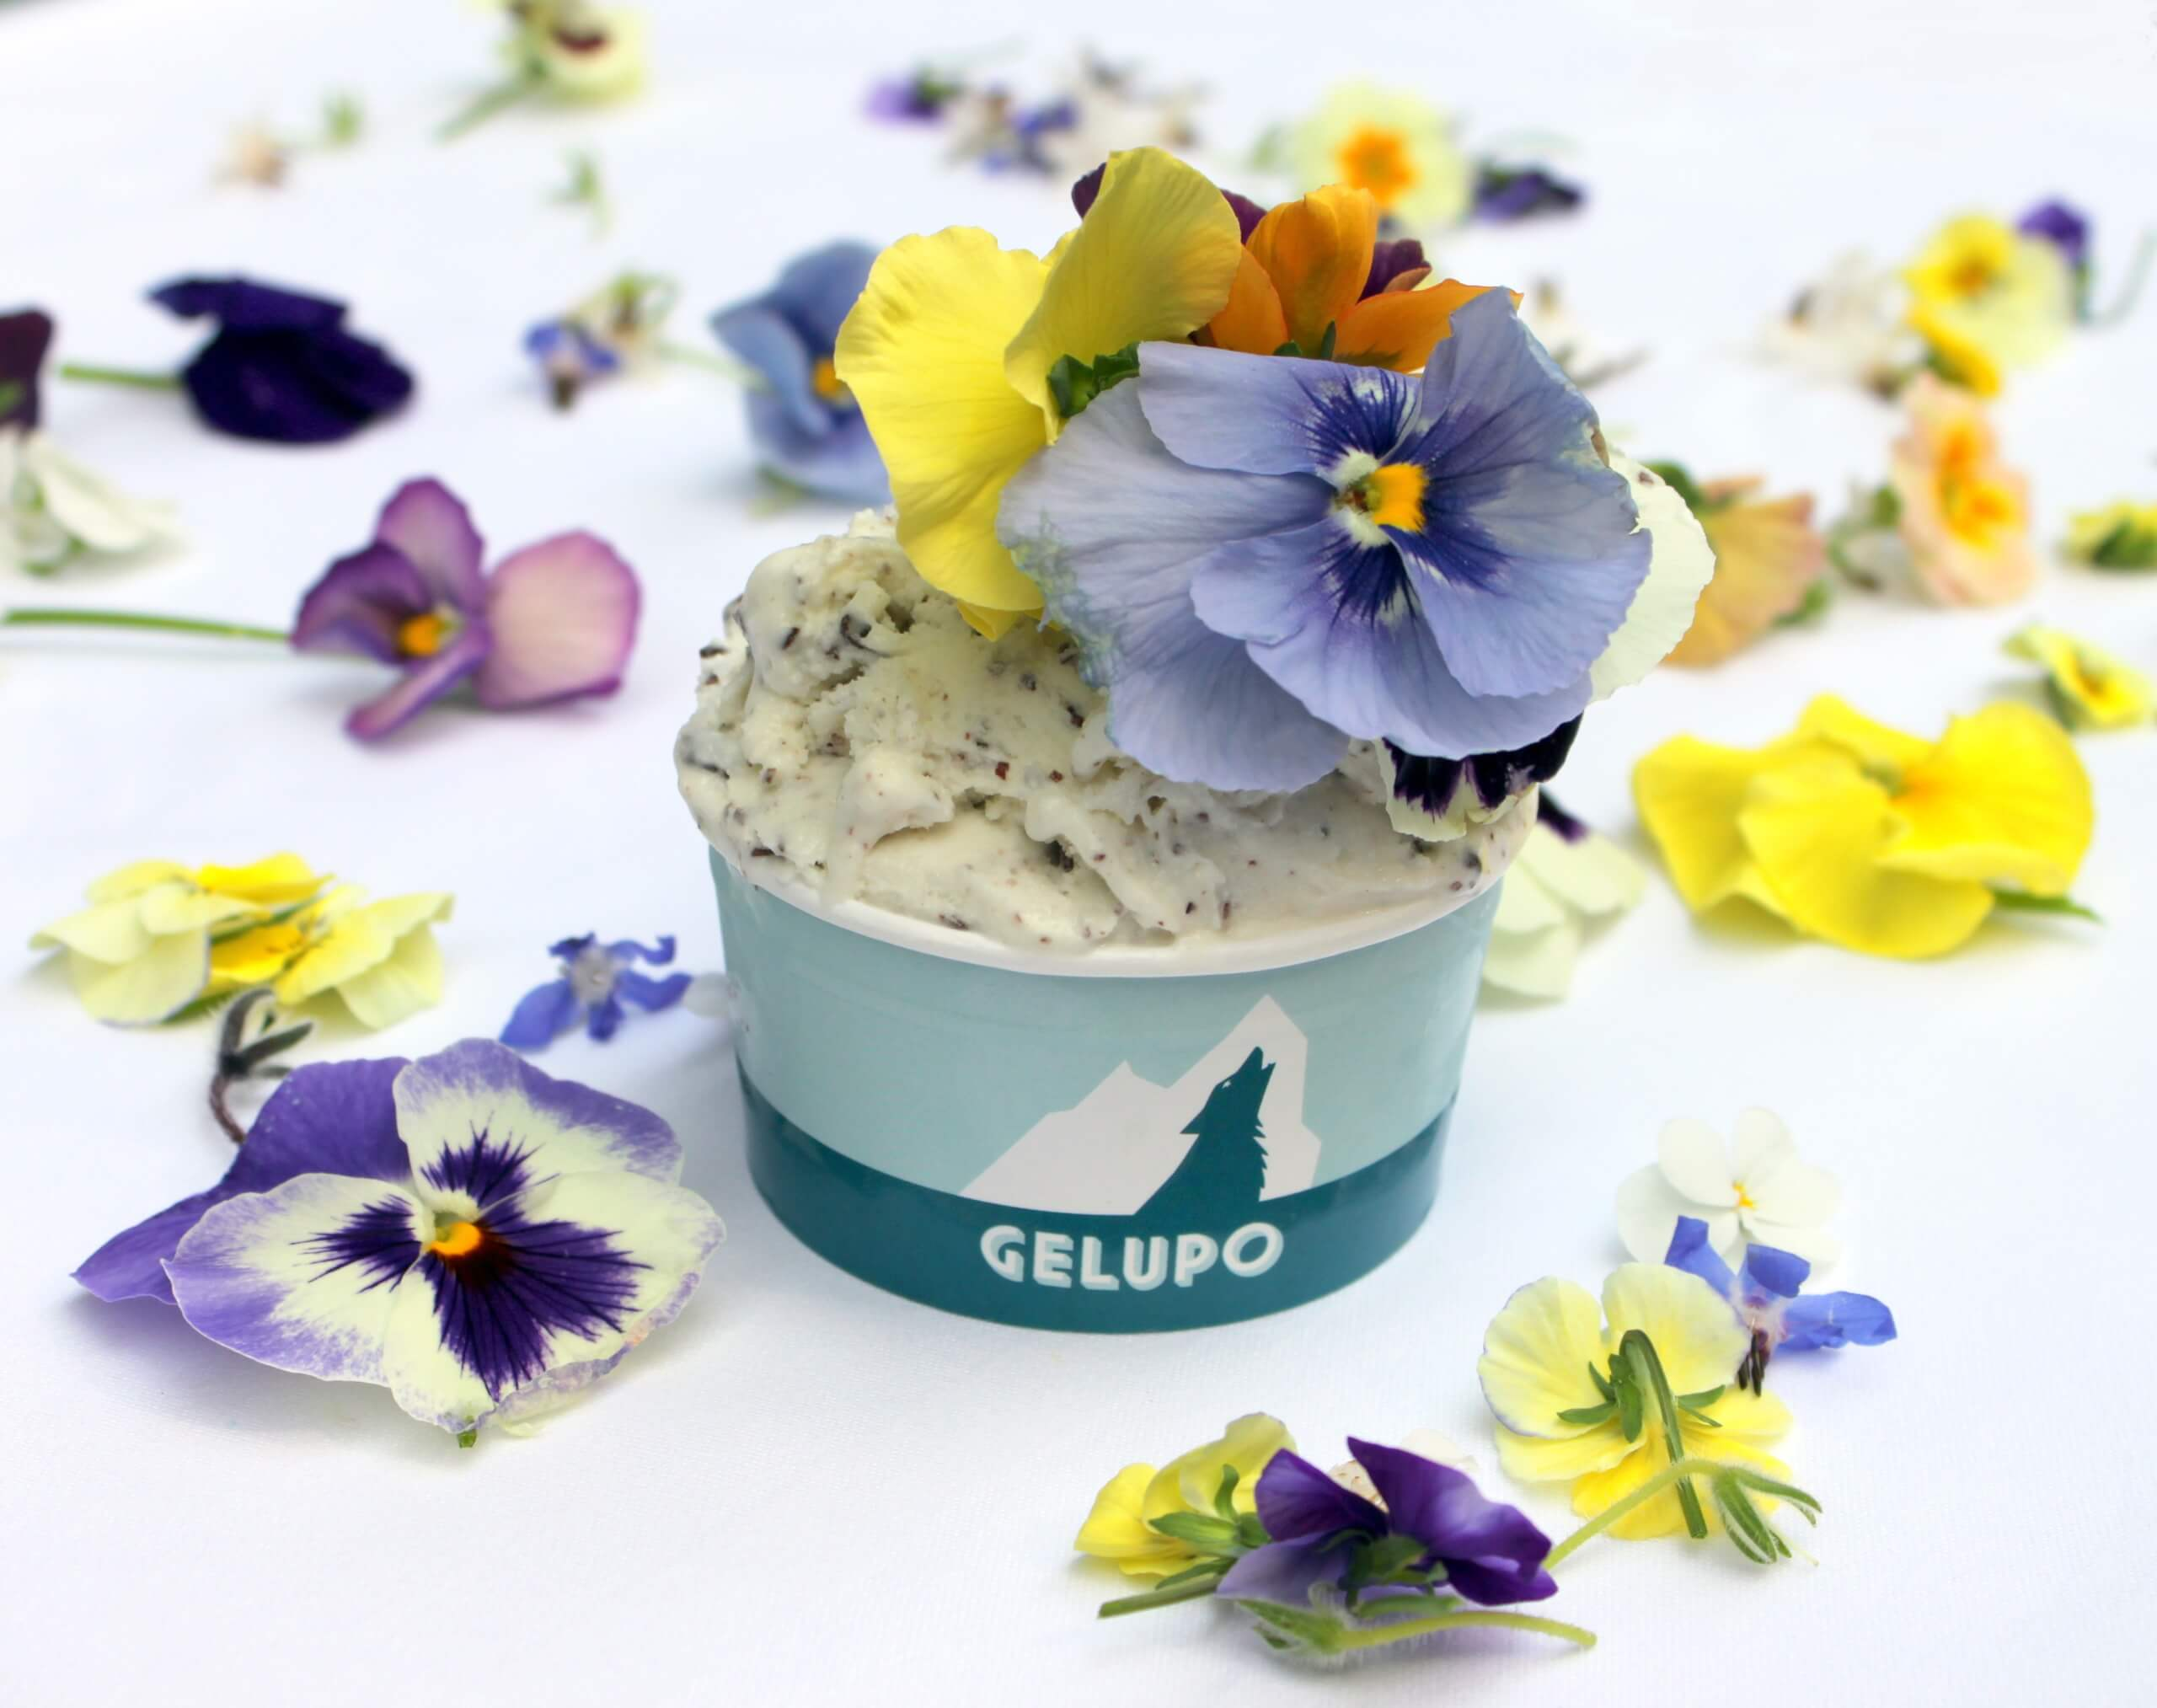 Gelupo EdibleFlower, eat flowers, flower, floral, chelsea flower show, chelsea, beautiful, summer, health, healthy, plate, seasonal, fresh, yummy, beautiful, stunning, creative, chef, cook, ice cream